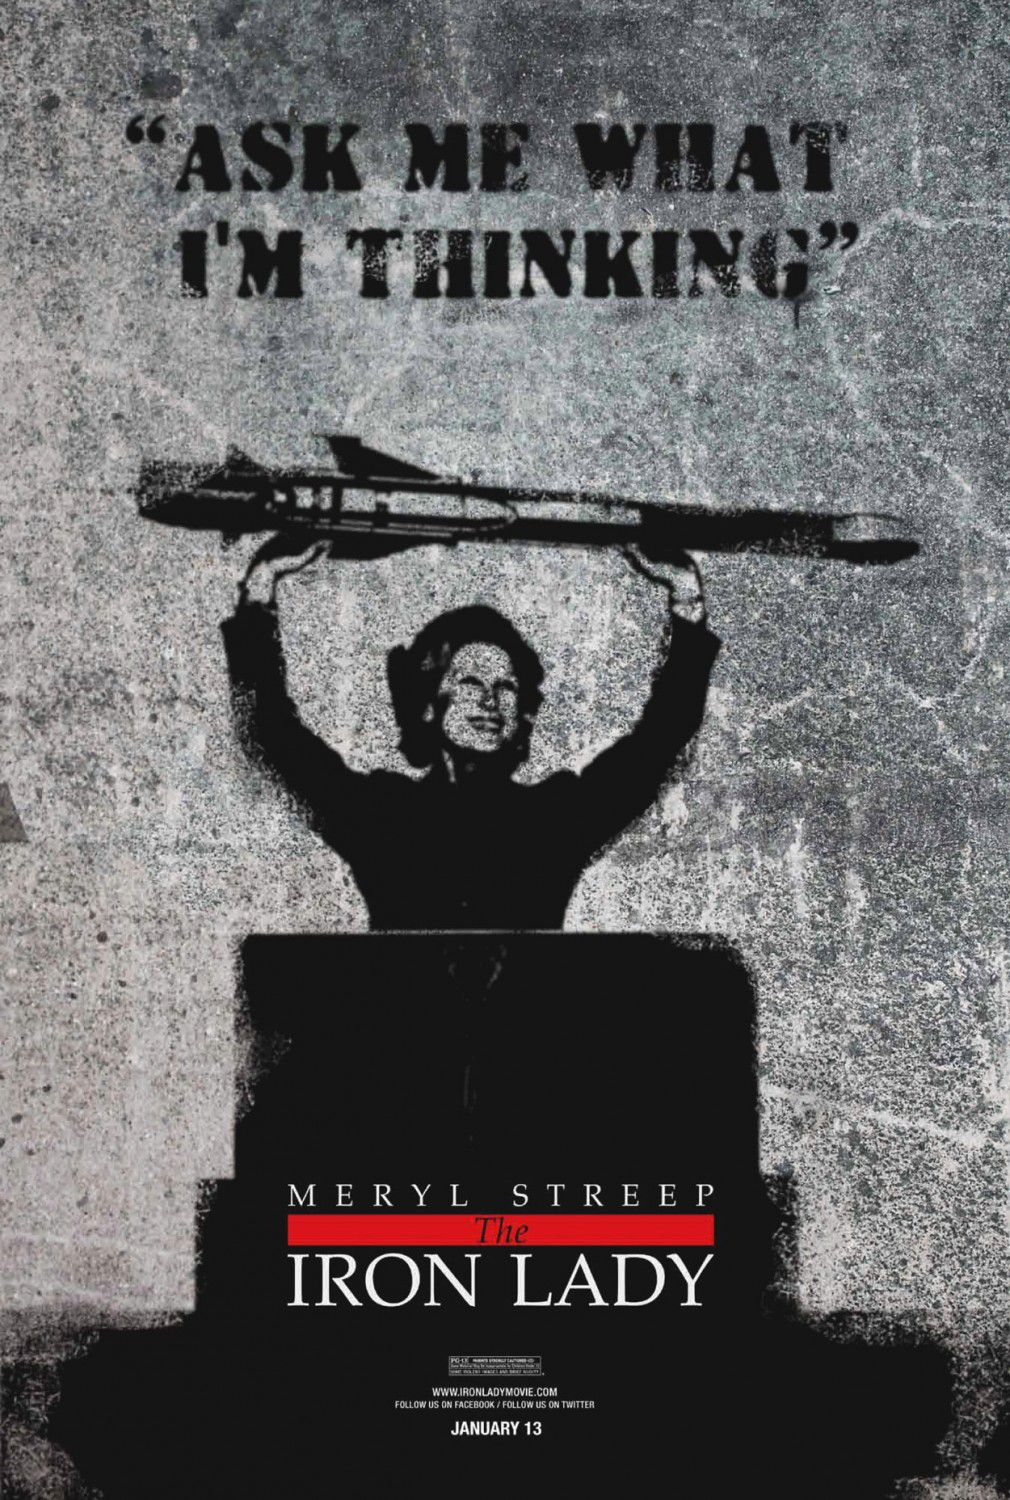 Iron Lady - poster - Meryl Streep - Ask me what I'm thinking